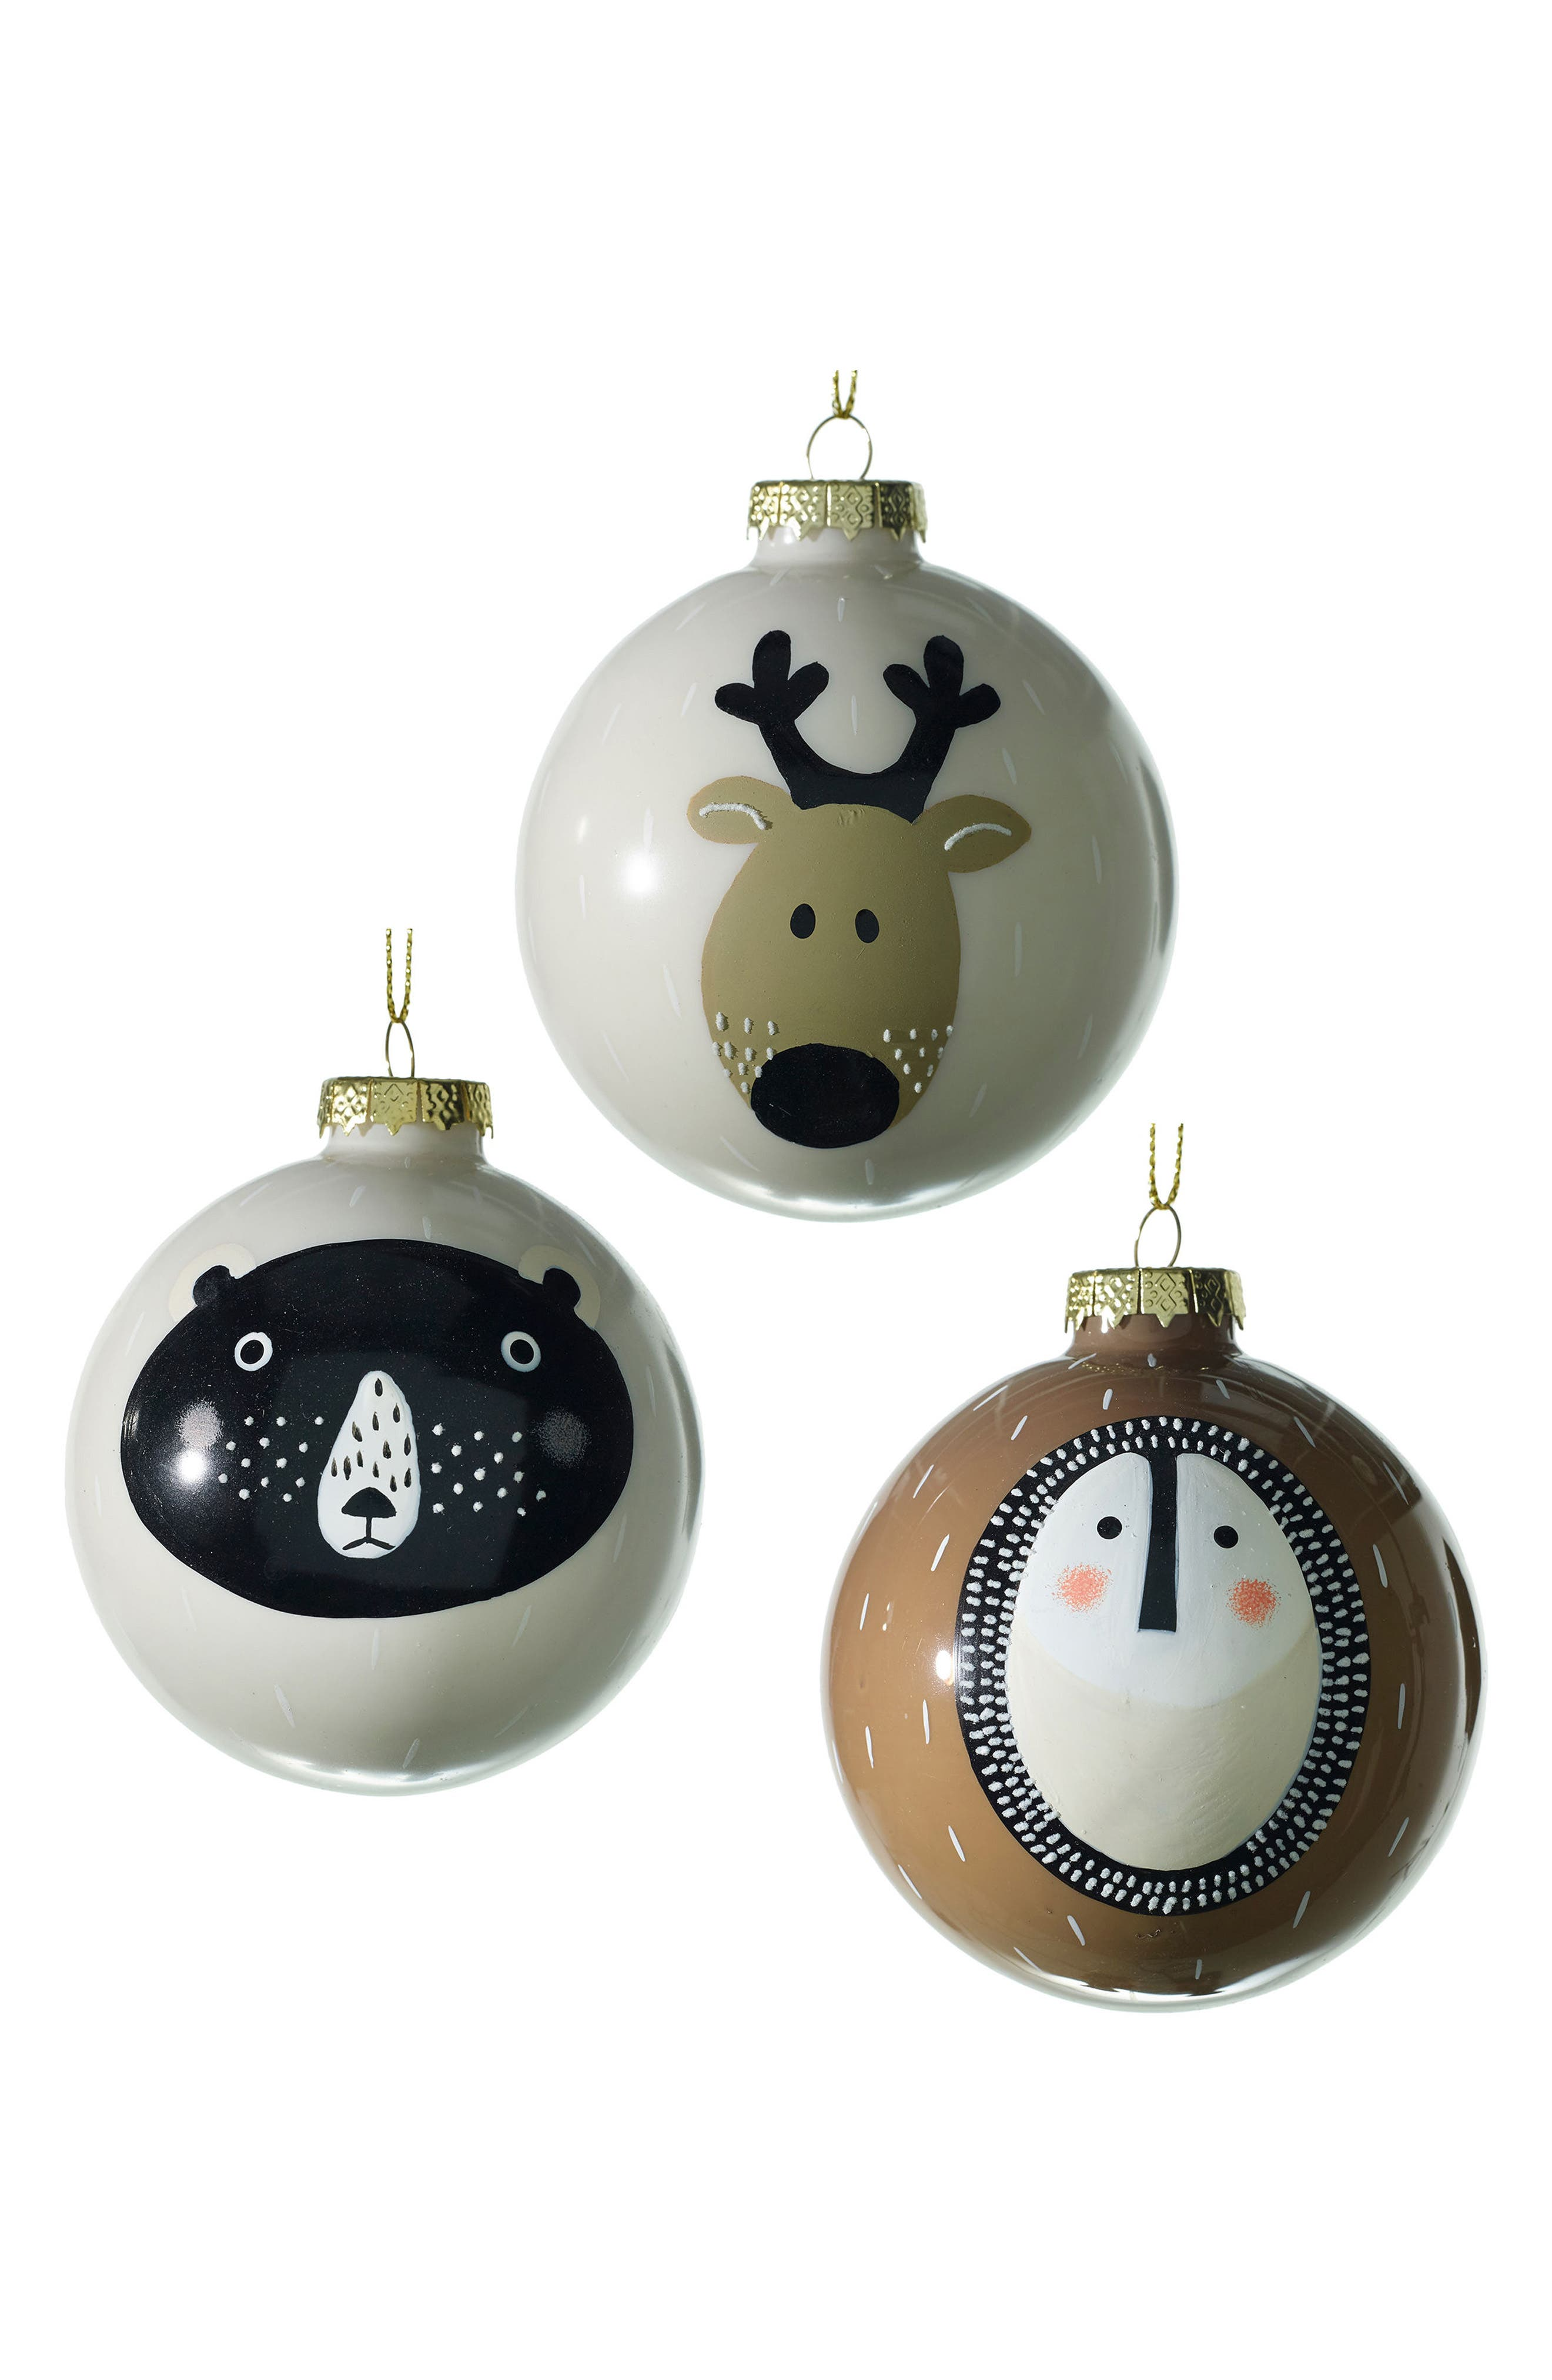 Main Image - Accent Decor Wild Animal Set of 3 Glass Ball Ornaments